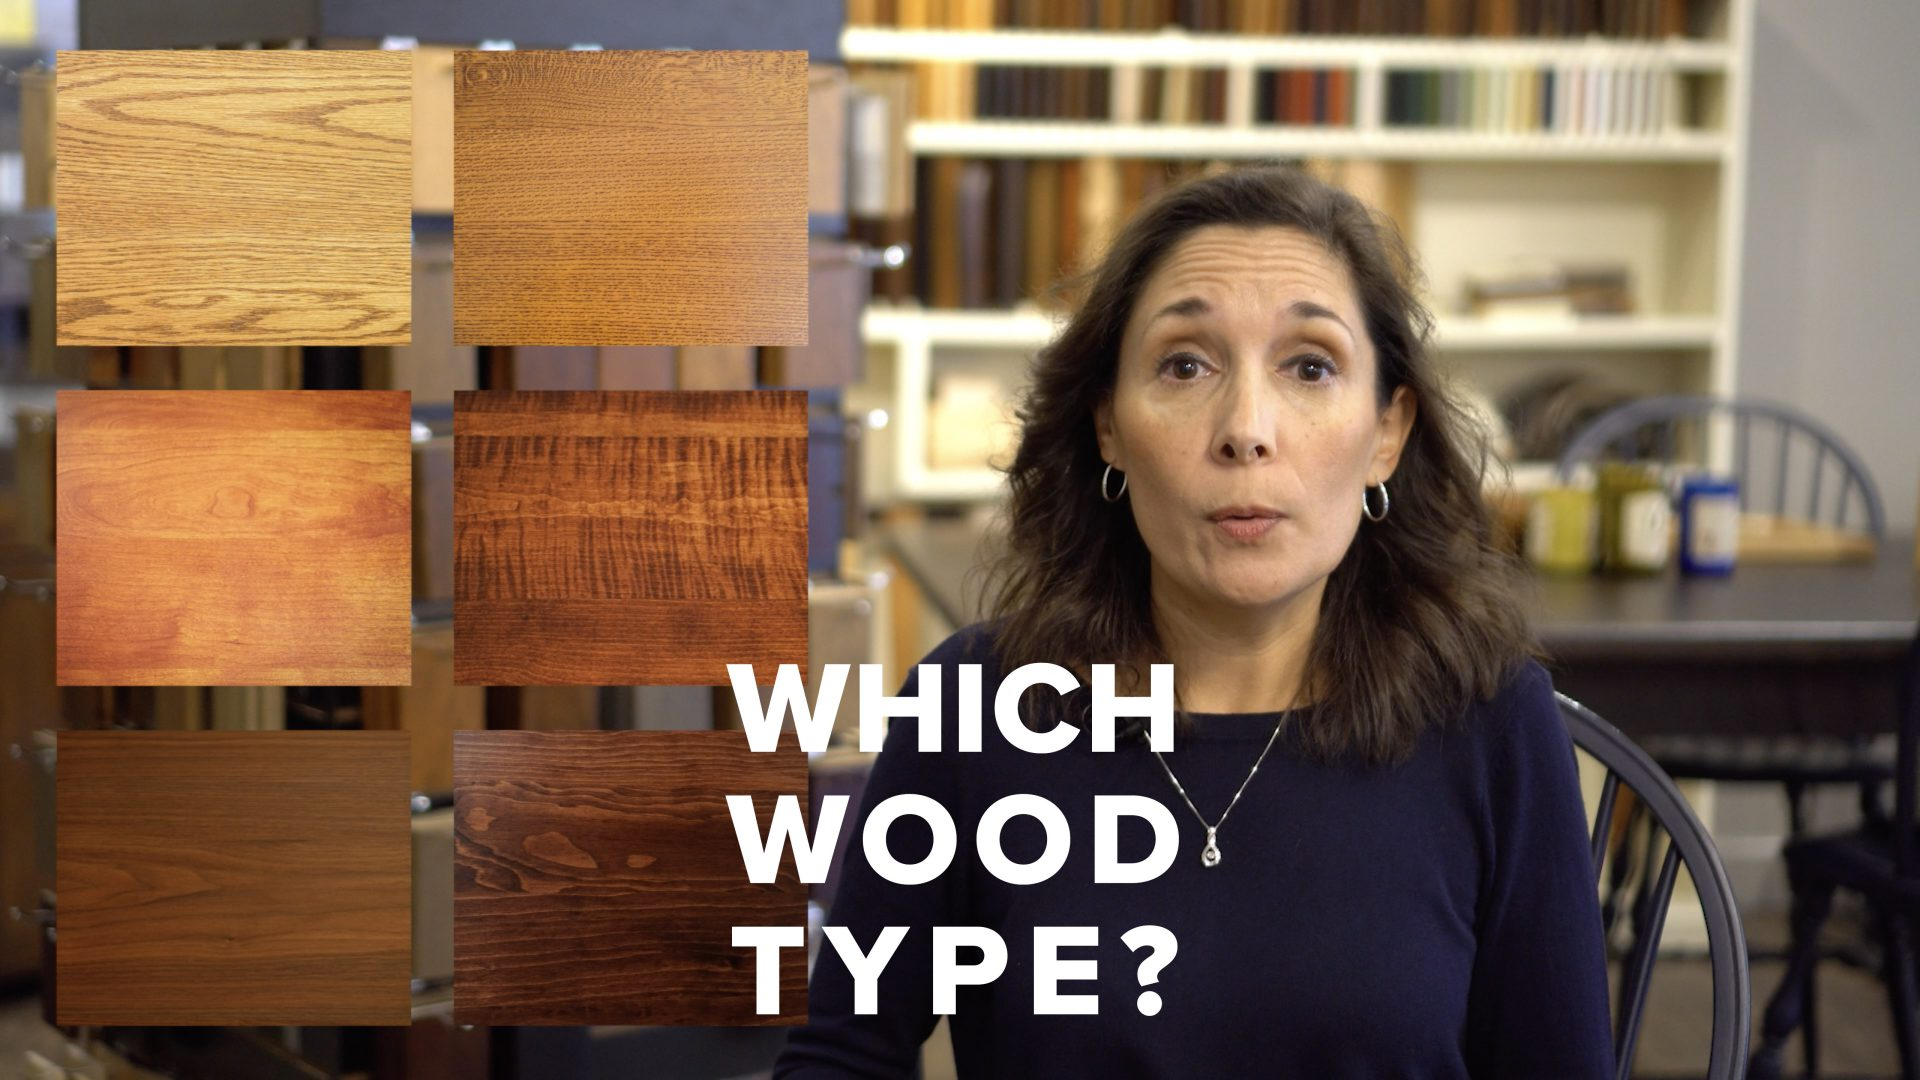 Choose your wood type video title